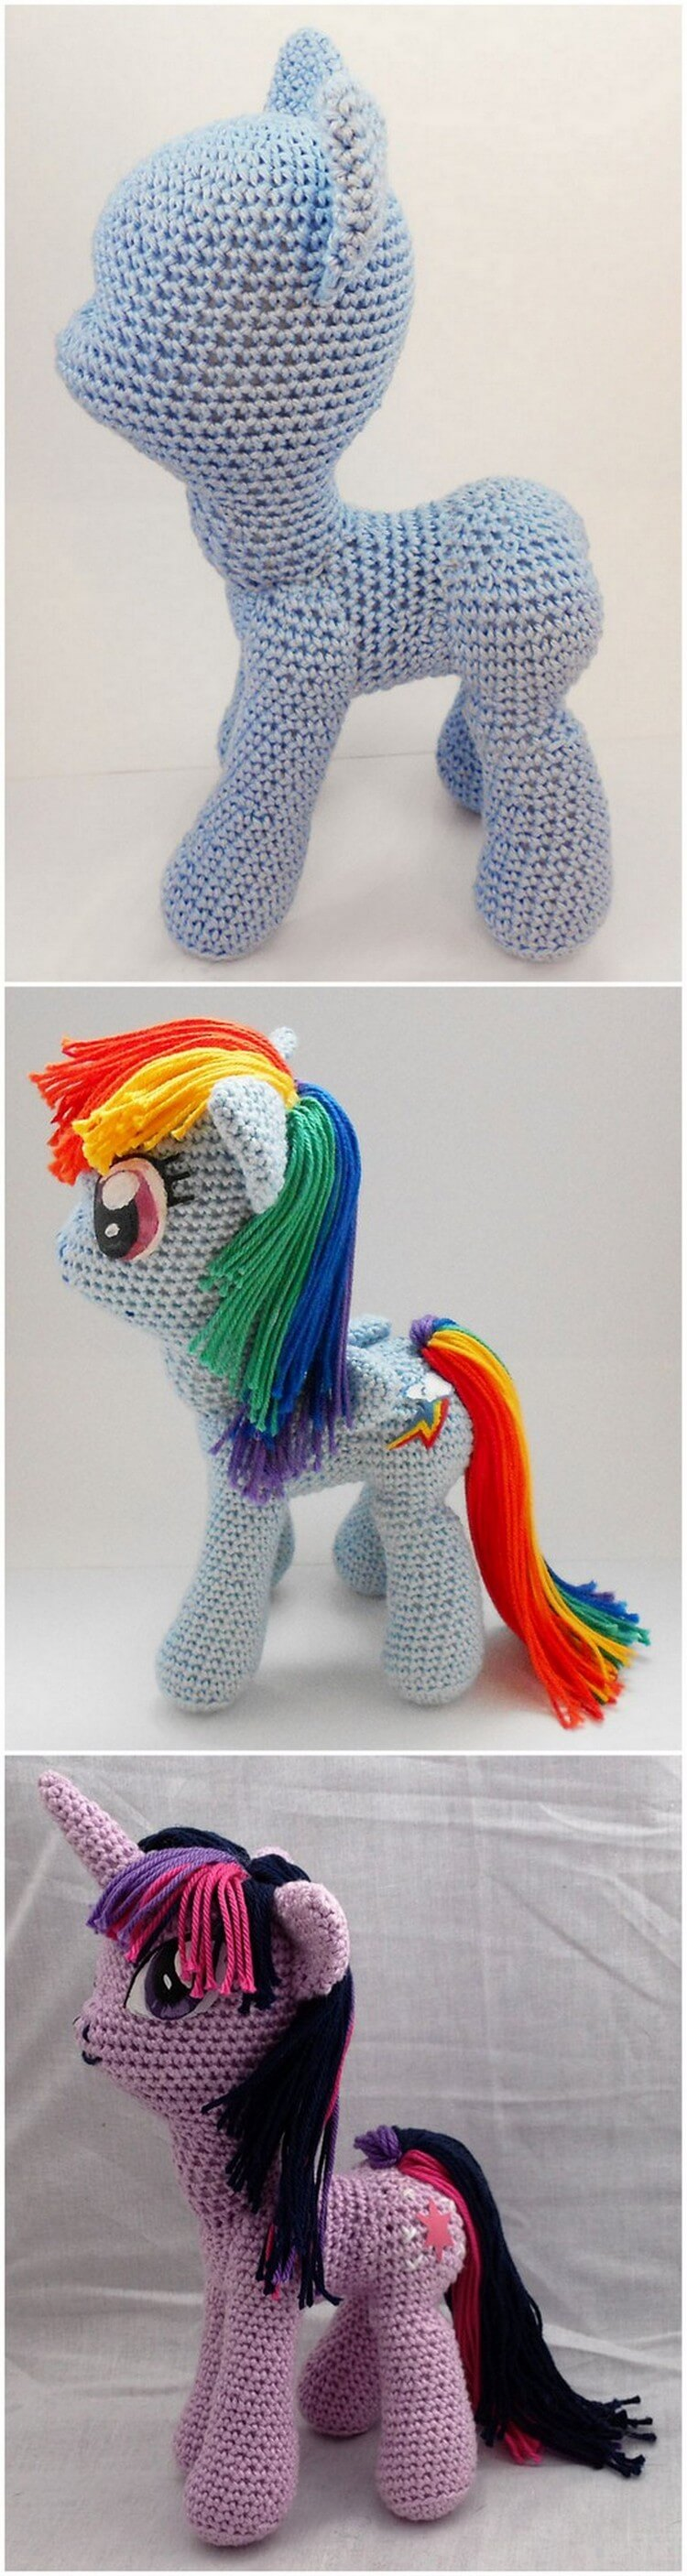 Crochet Unicorn Pattern (49)